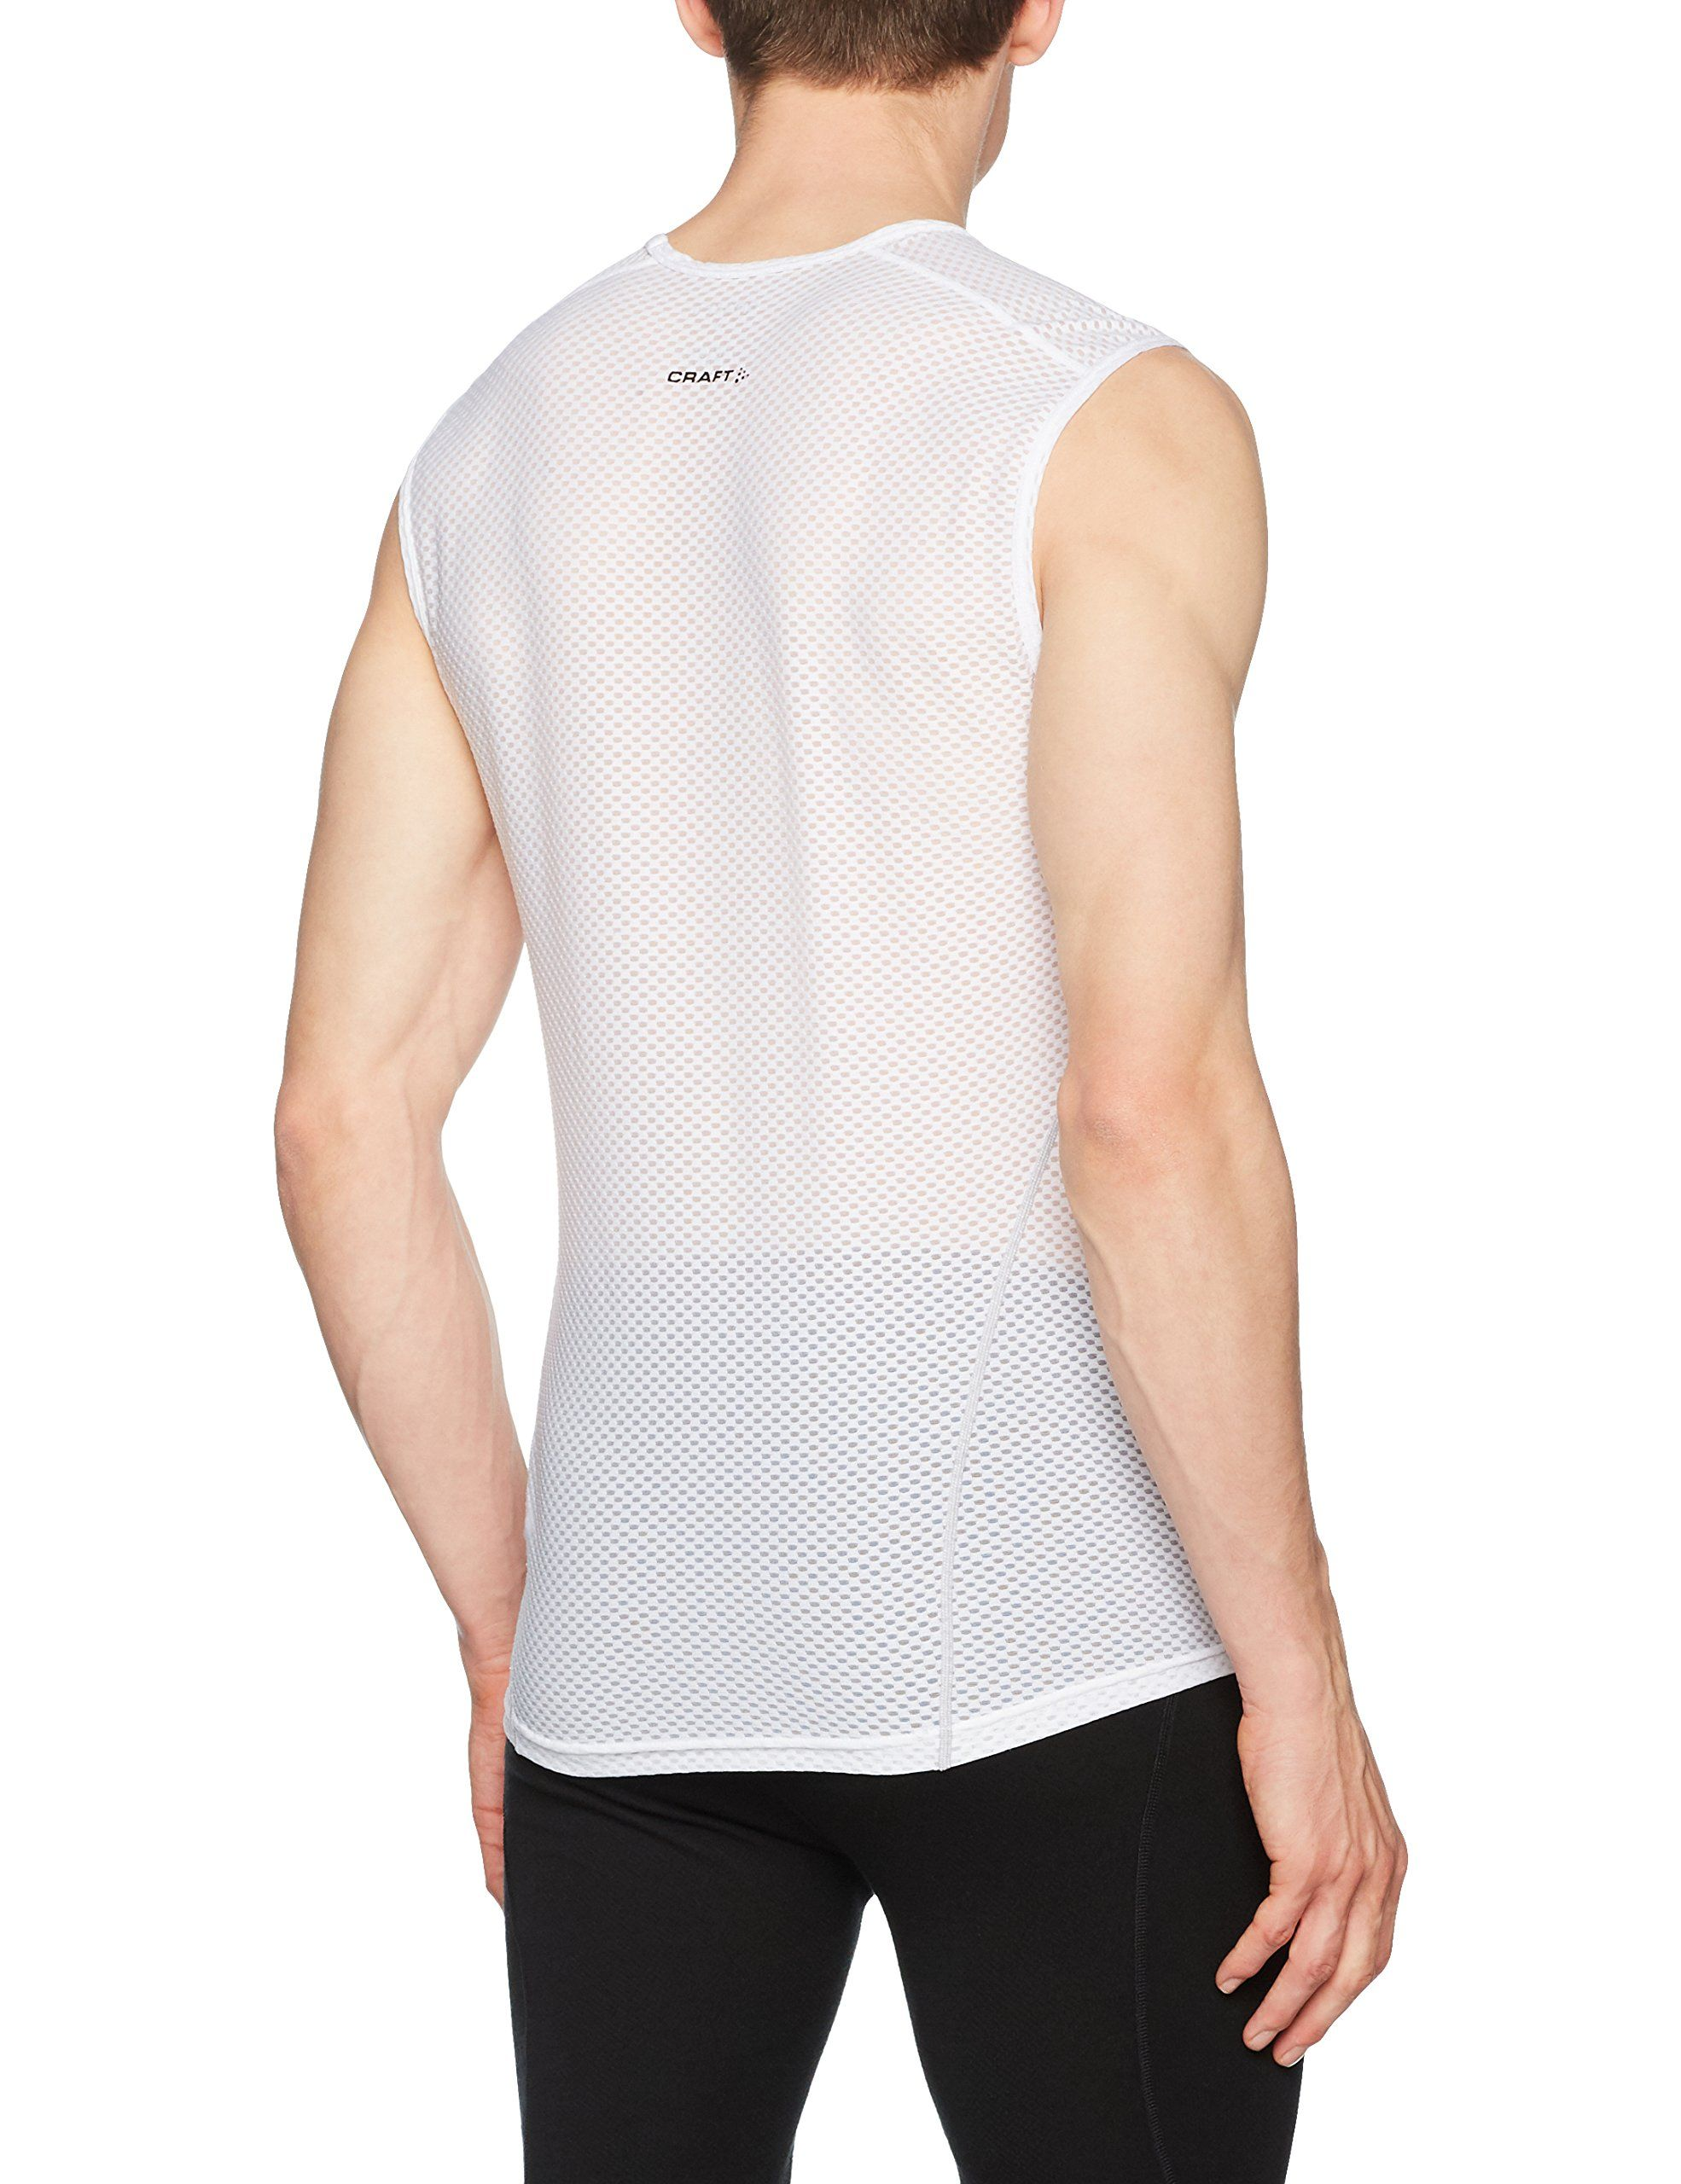 4fed0f71cf607 Craft Mens Cool Mesh Superlight Sleeveless Baselayer Top     You can find  more details by visiting the image link. (Note Amazon affiliate link)